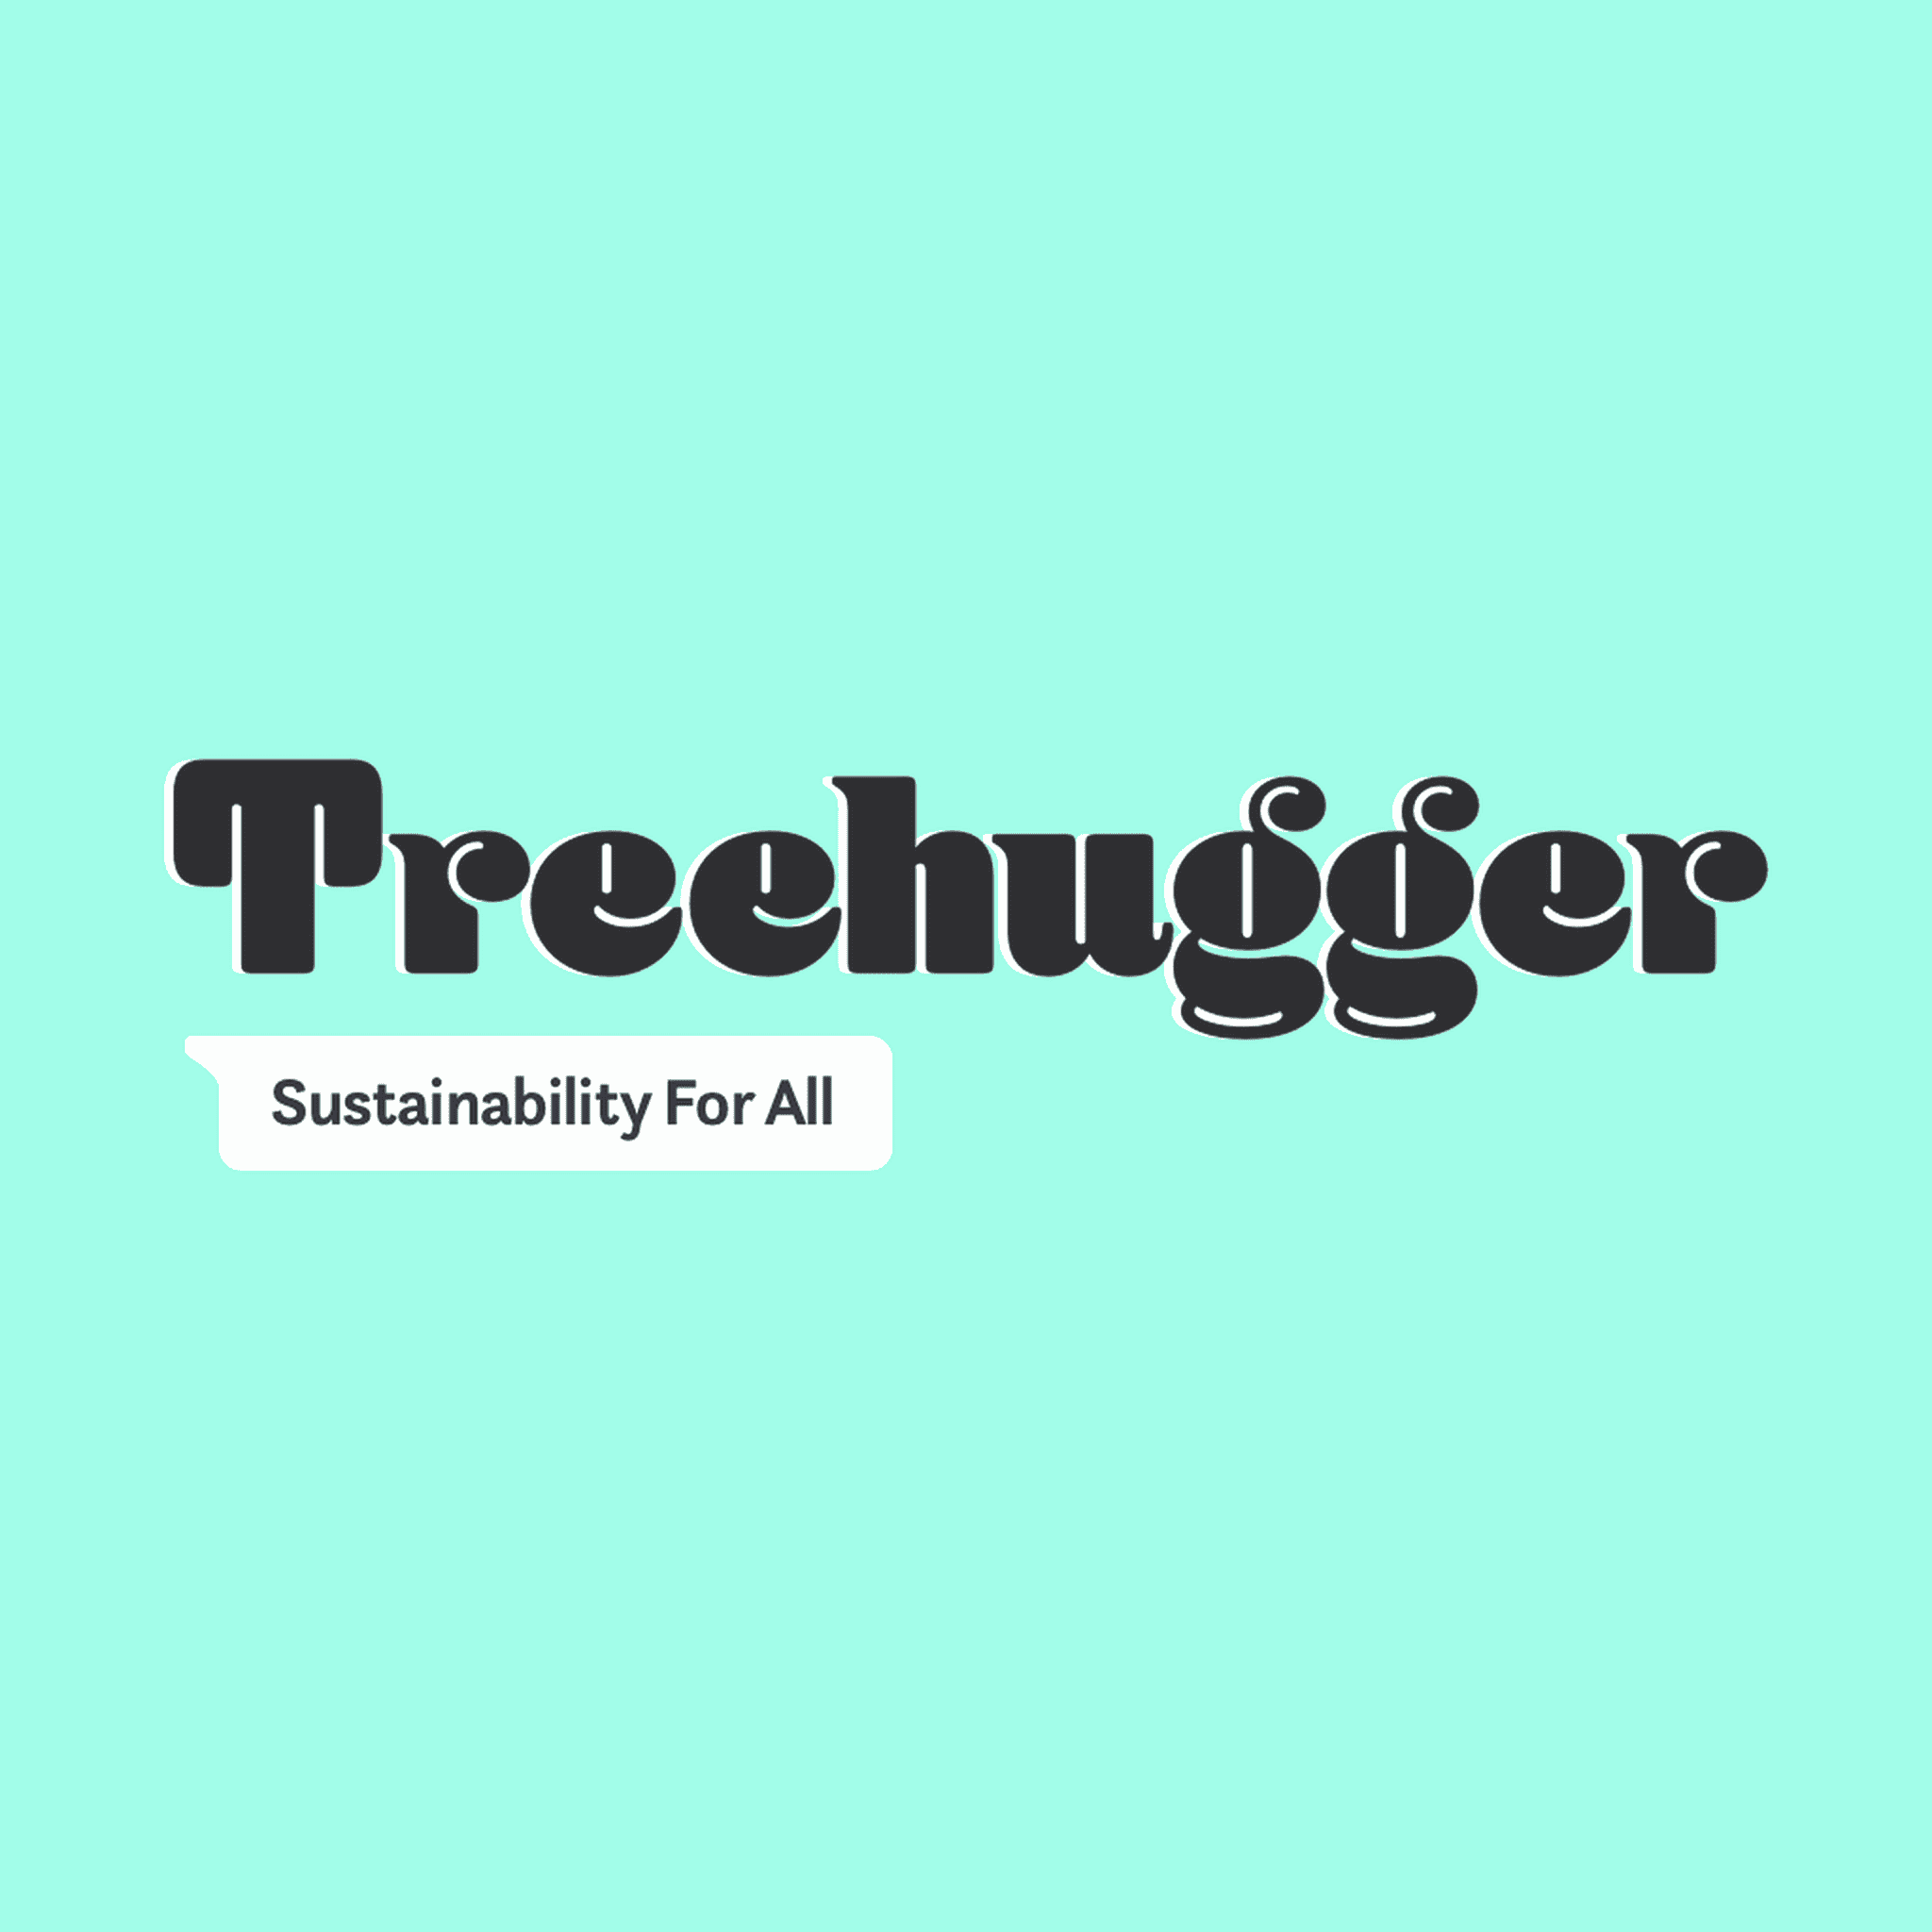 Treehugger Sustainability for All